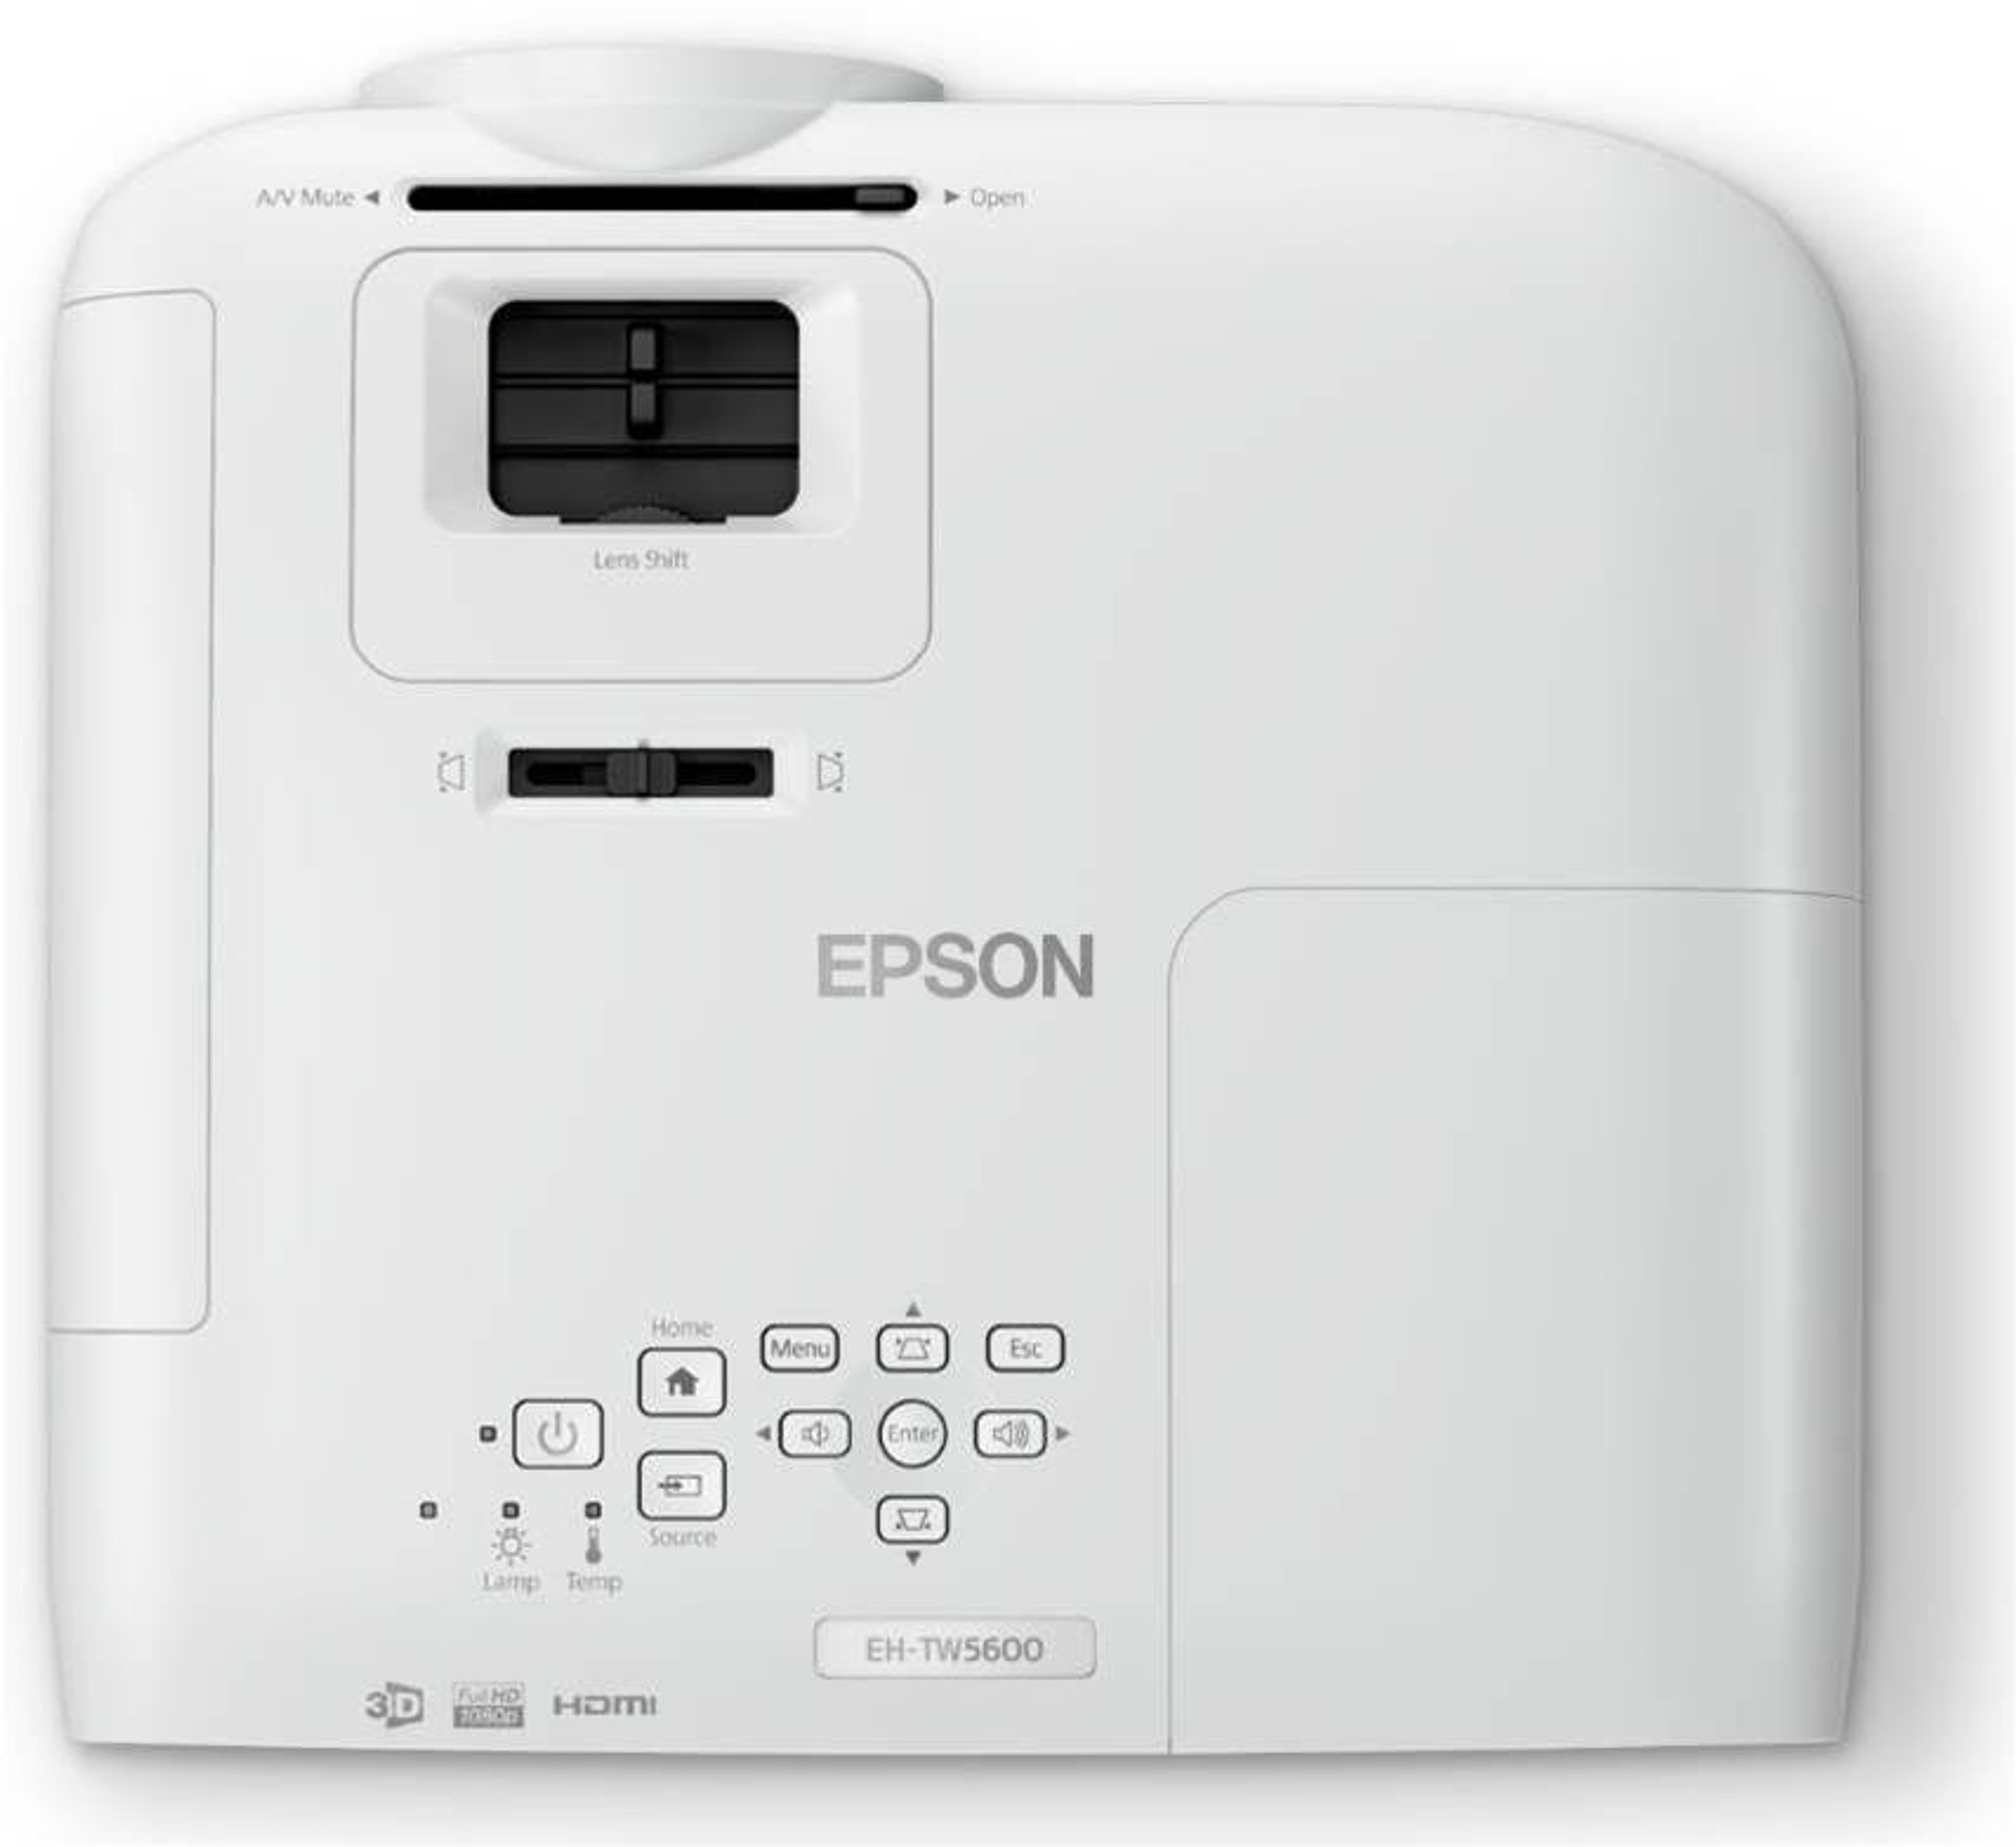 Epson EH-TW5600 Full HD Home Theatre projector with high contrast